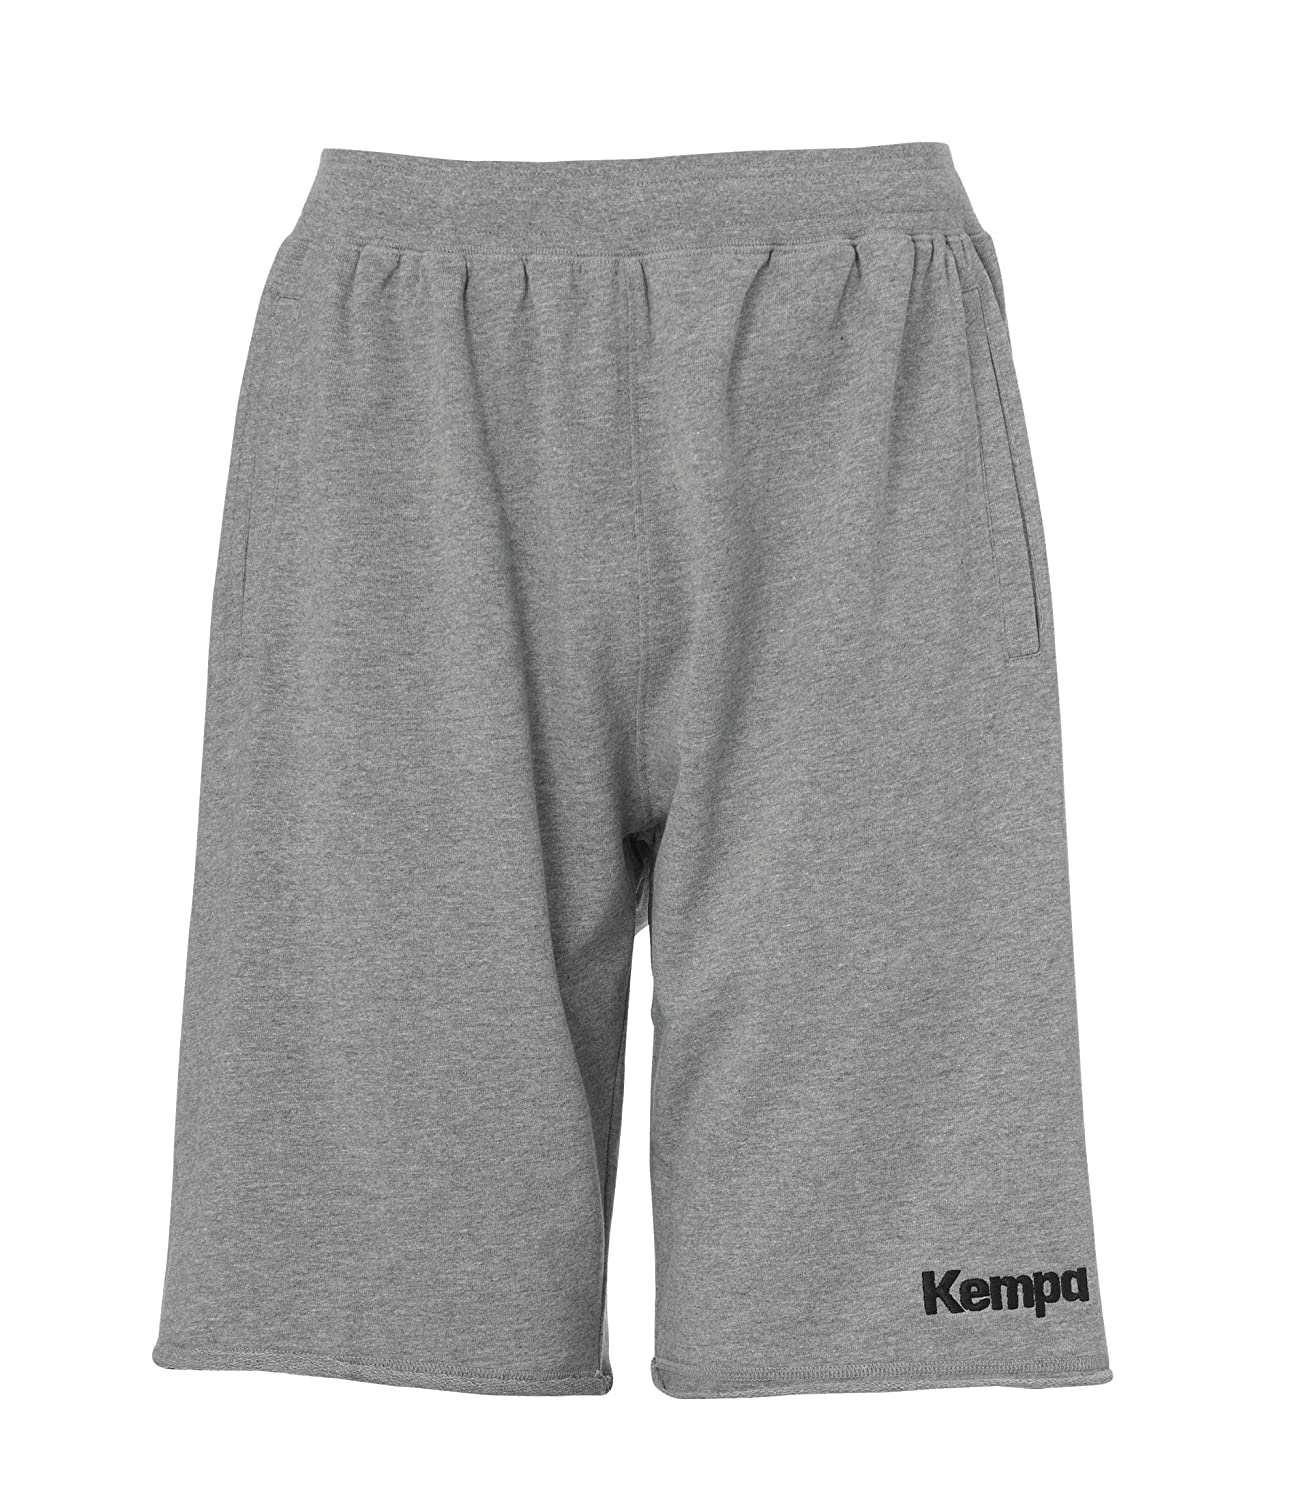 Kempa Kinder Core 2.0 Sweatshorts